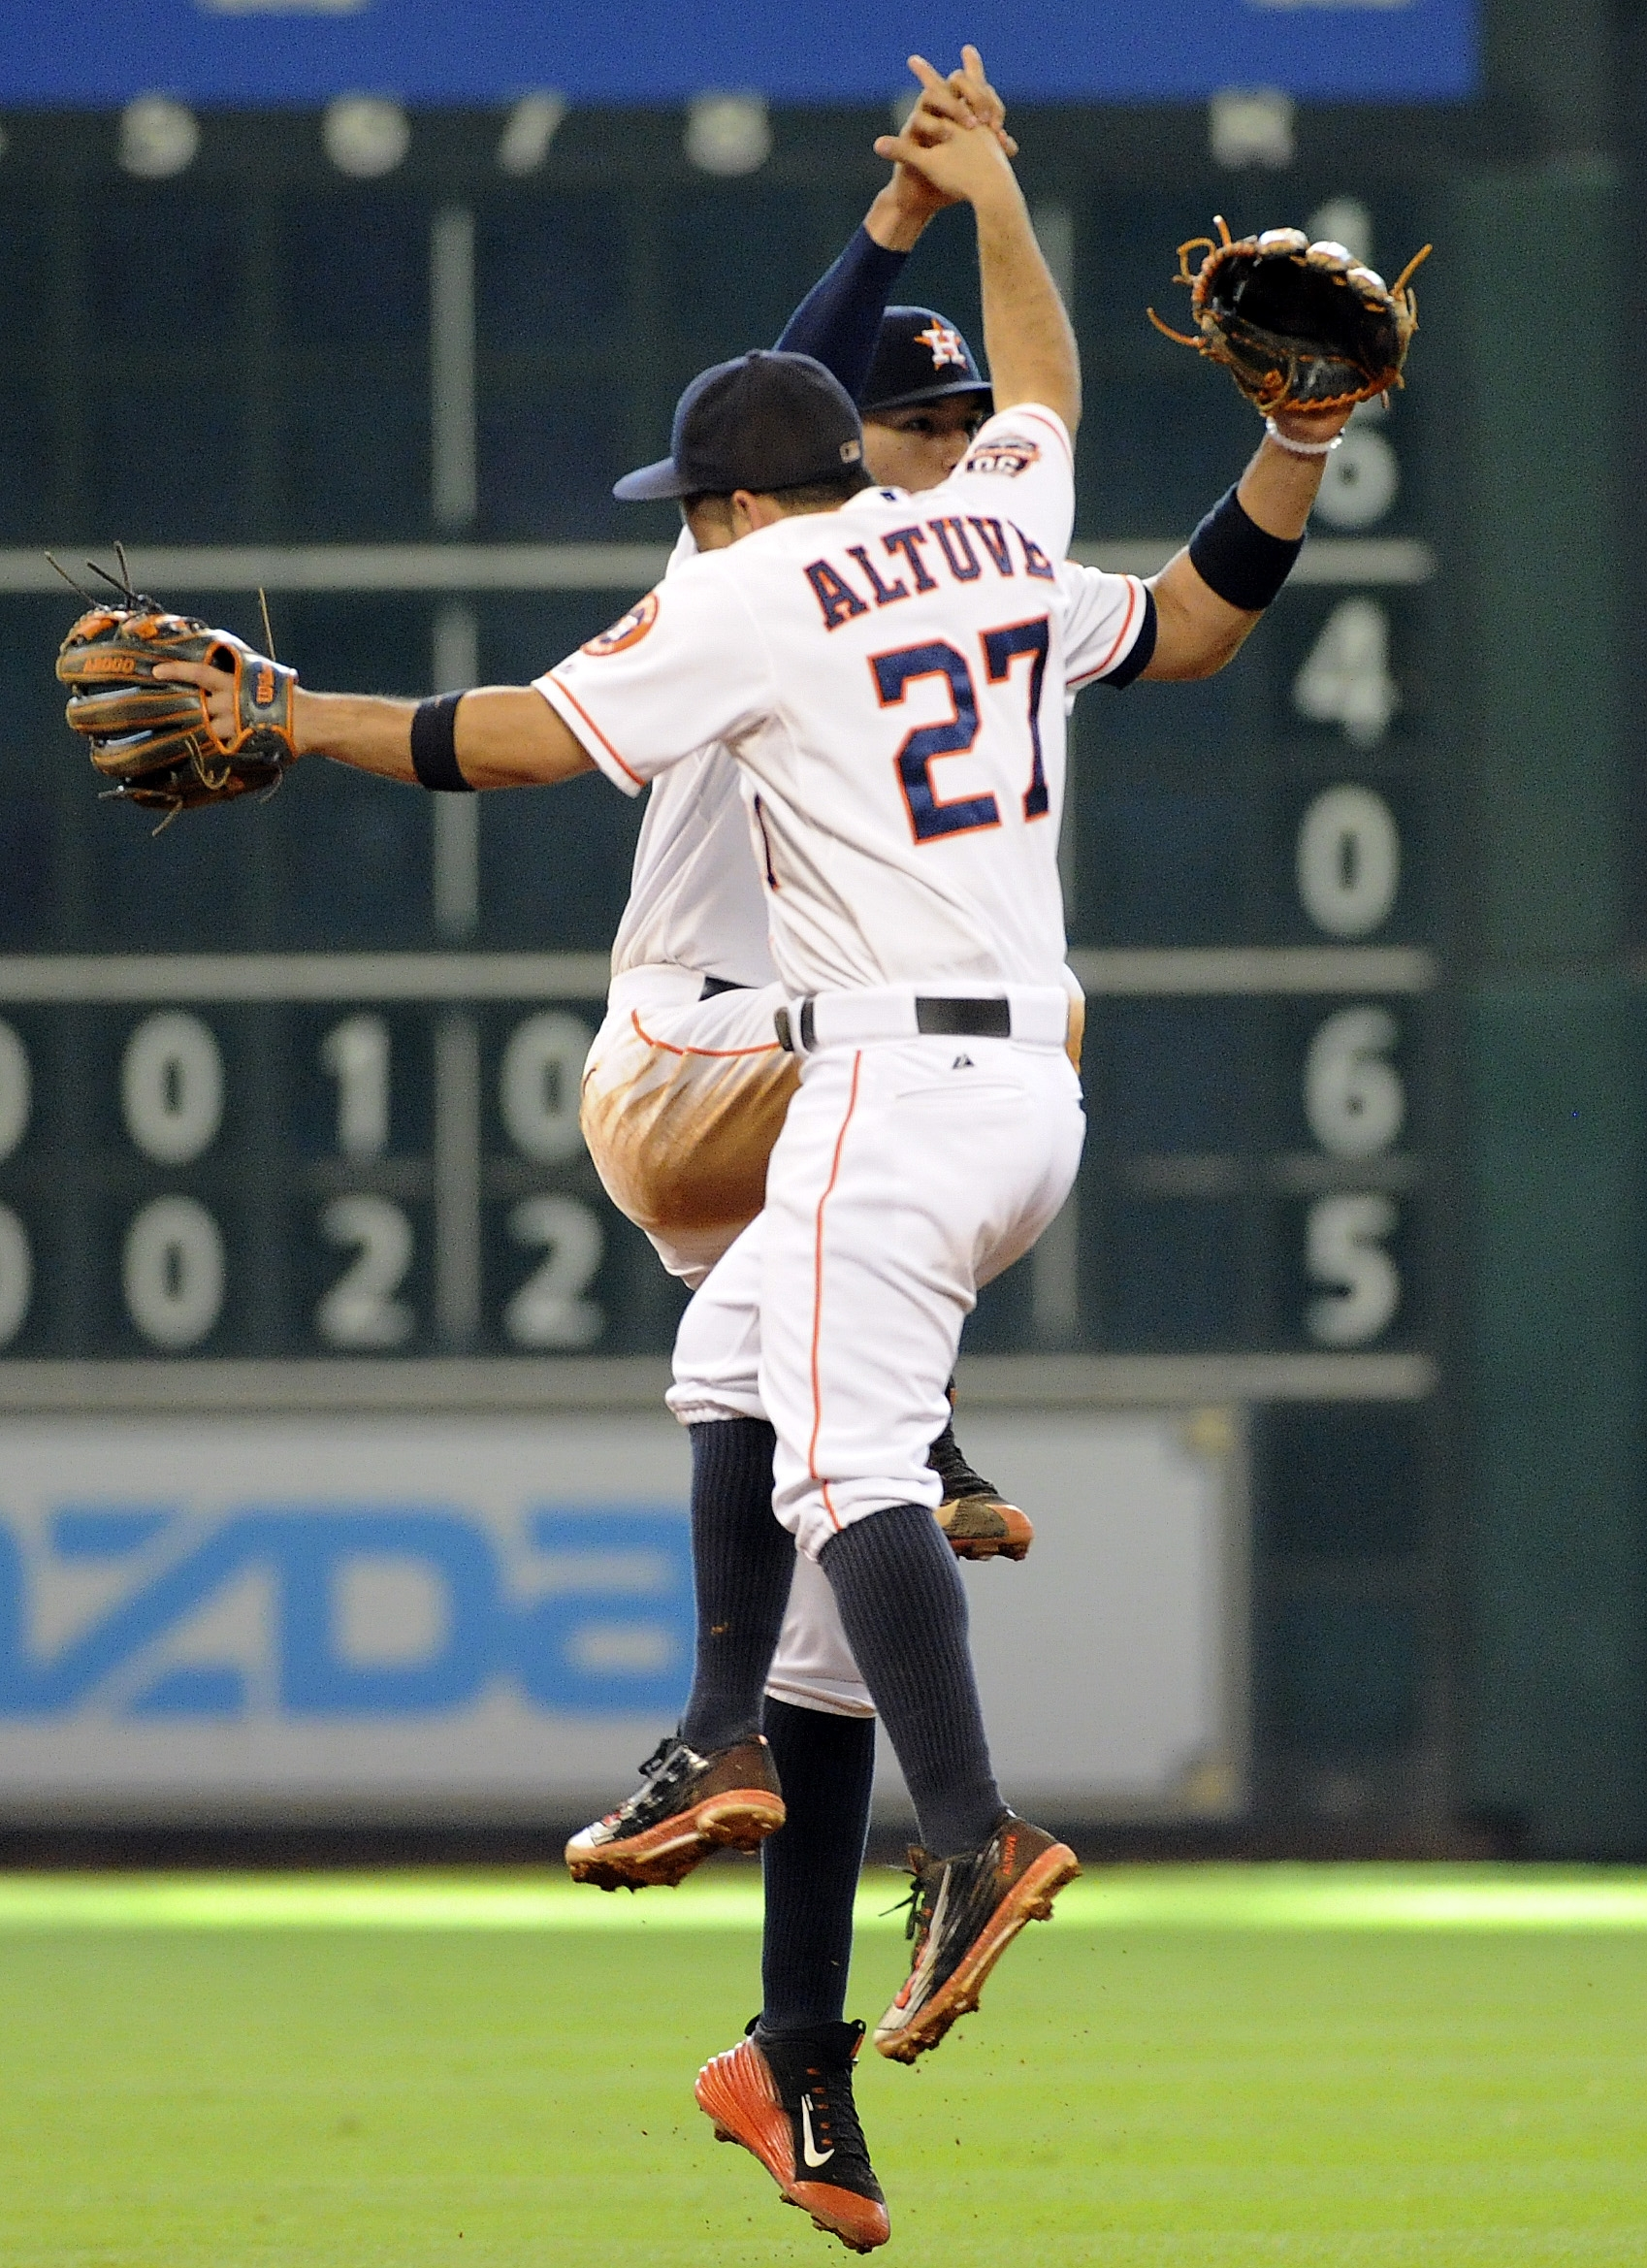 Houston Astros' Jose Altuve (27) and Carlos Correa celebrate the Astros' 8-5 victory over the Minnesota Twins in a baseball game, Sunday, Sept. 6, 2015, in Houston. (AP Photo/Eric Christian Smith)